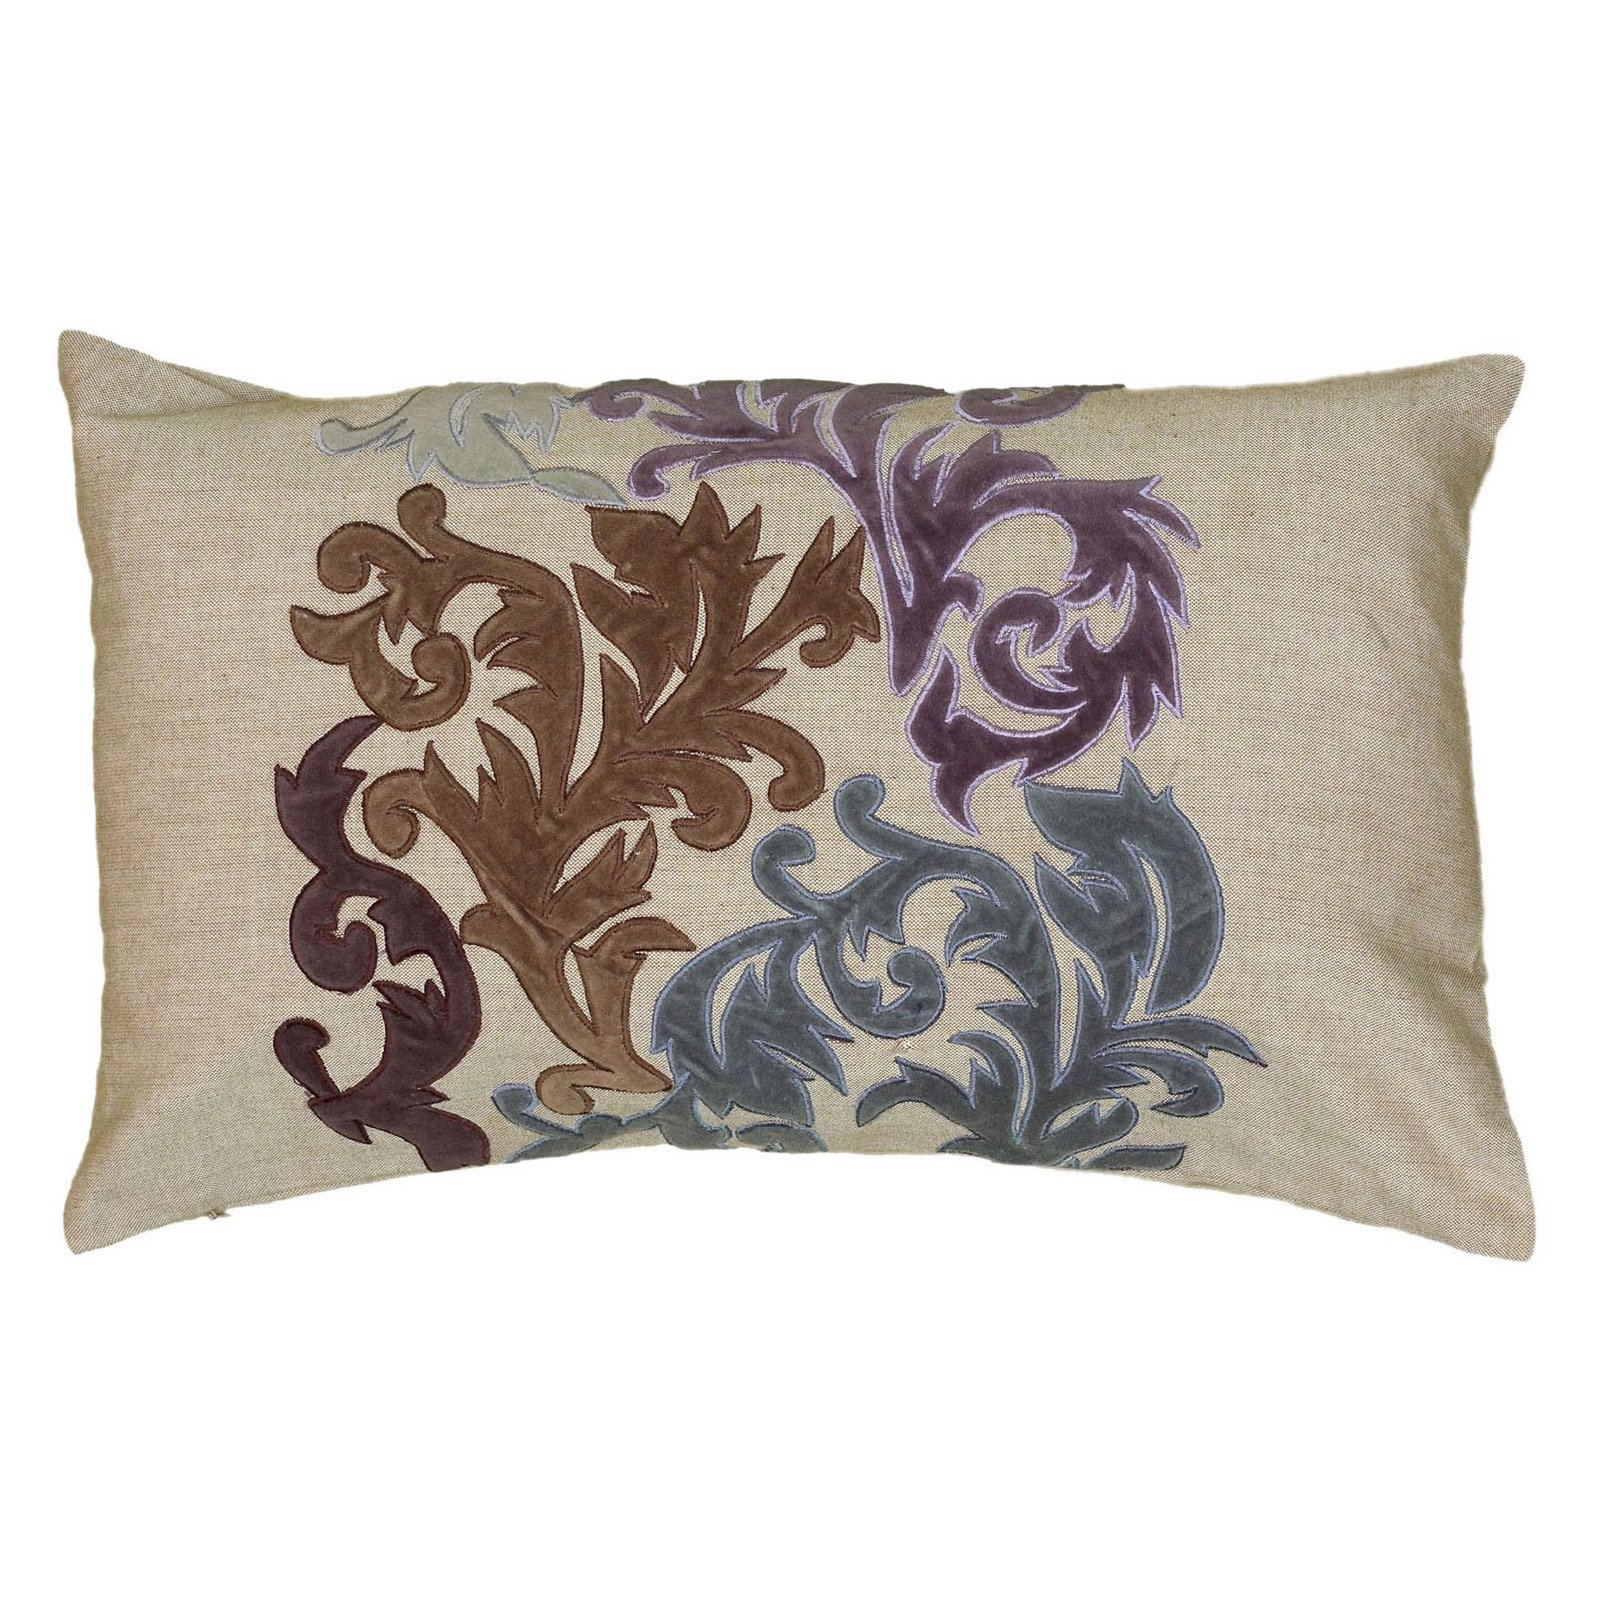 "Rizzy Home Decorative Poly Filled Throw Pillow Damask 12""X20"" Khaki"